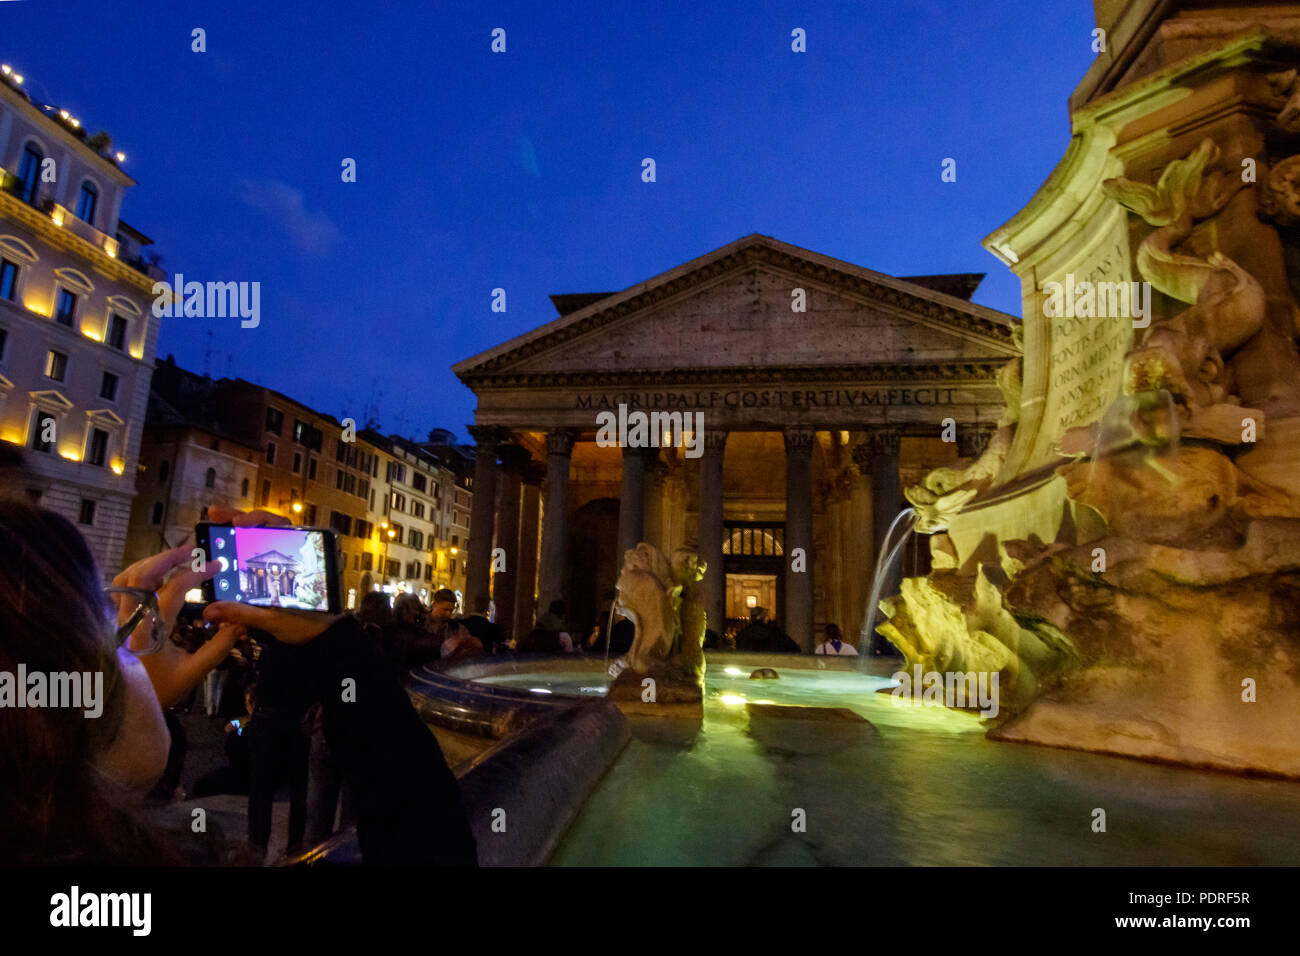 A tourist taking a photo of the Pantheon at night, Rome, Italy. - Stock Image